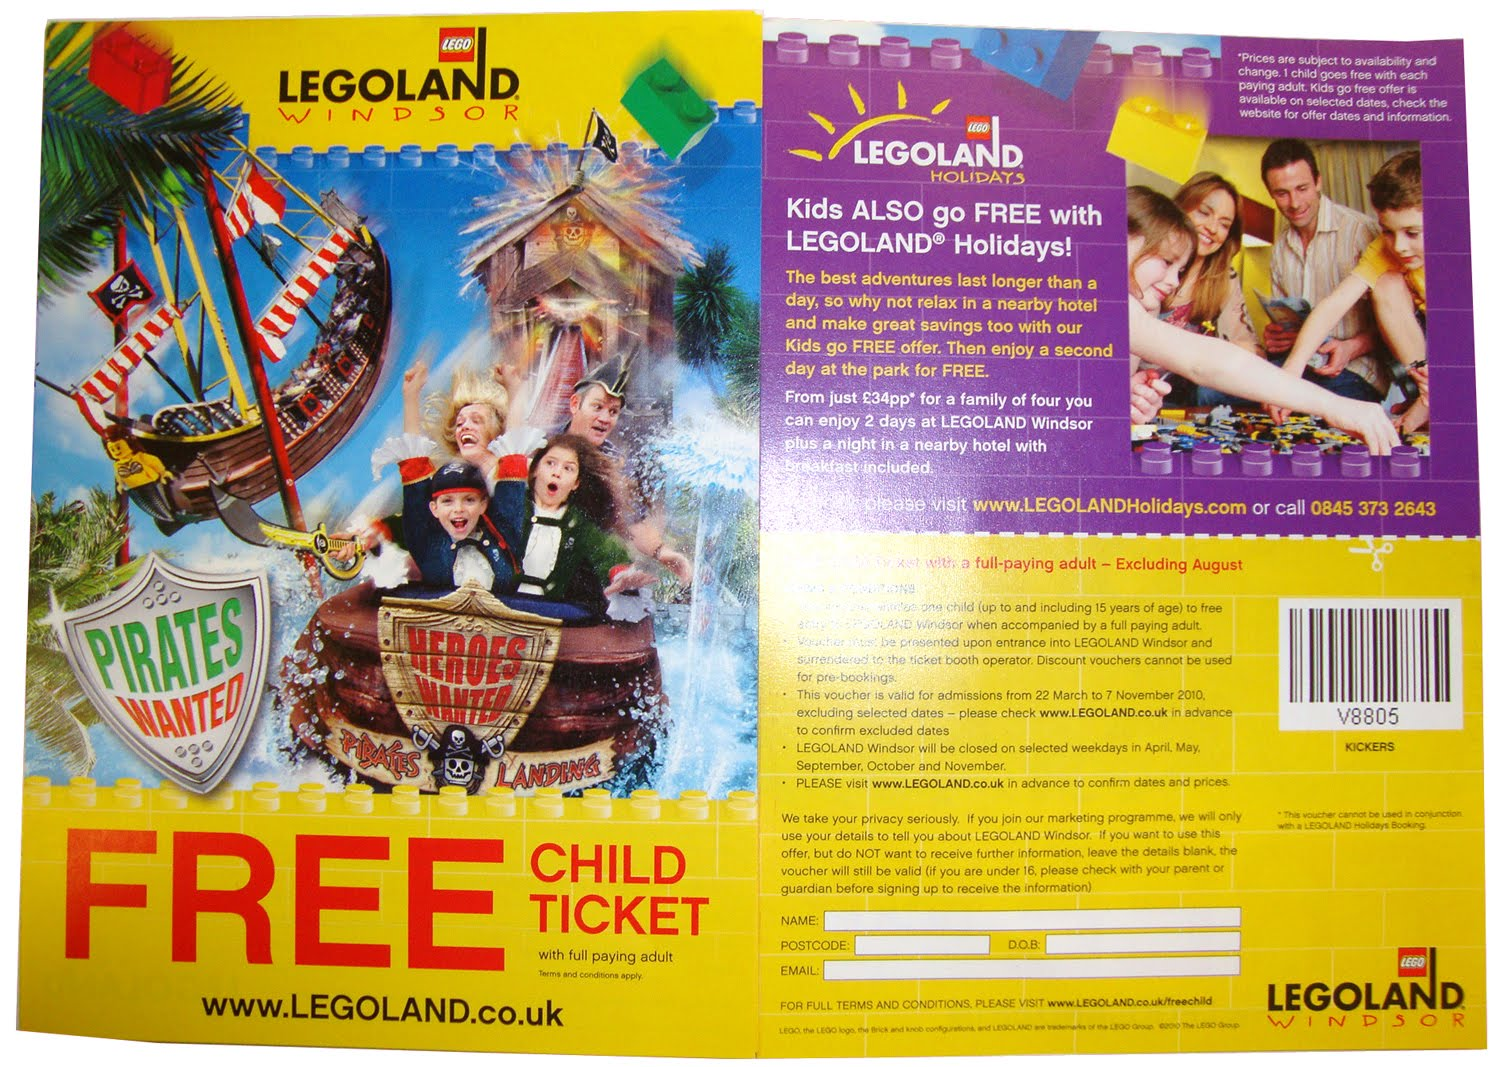 LEGOLAND ® Windsor Resort is one for all Lego fans and anyone who enjoys an entertaining day out. Save money when booking your day out by using one of our LEGOLAND ® Windsor Resort voucher codes. Fun for all the family; choose from shows, rides, displays and labyrinths.